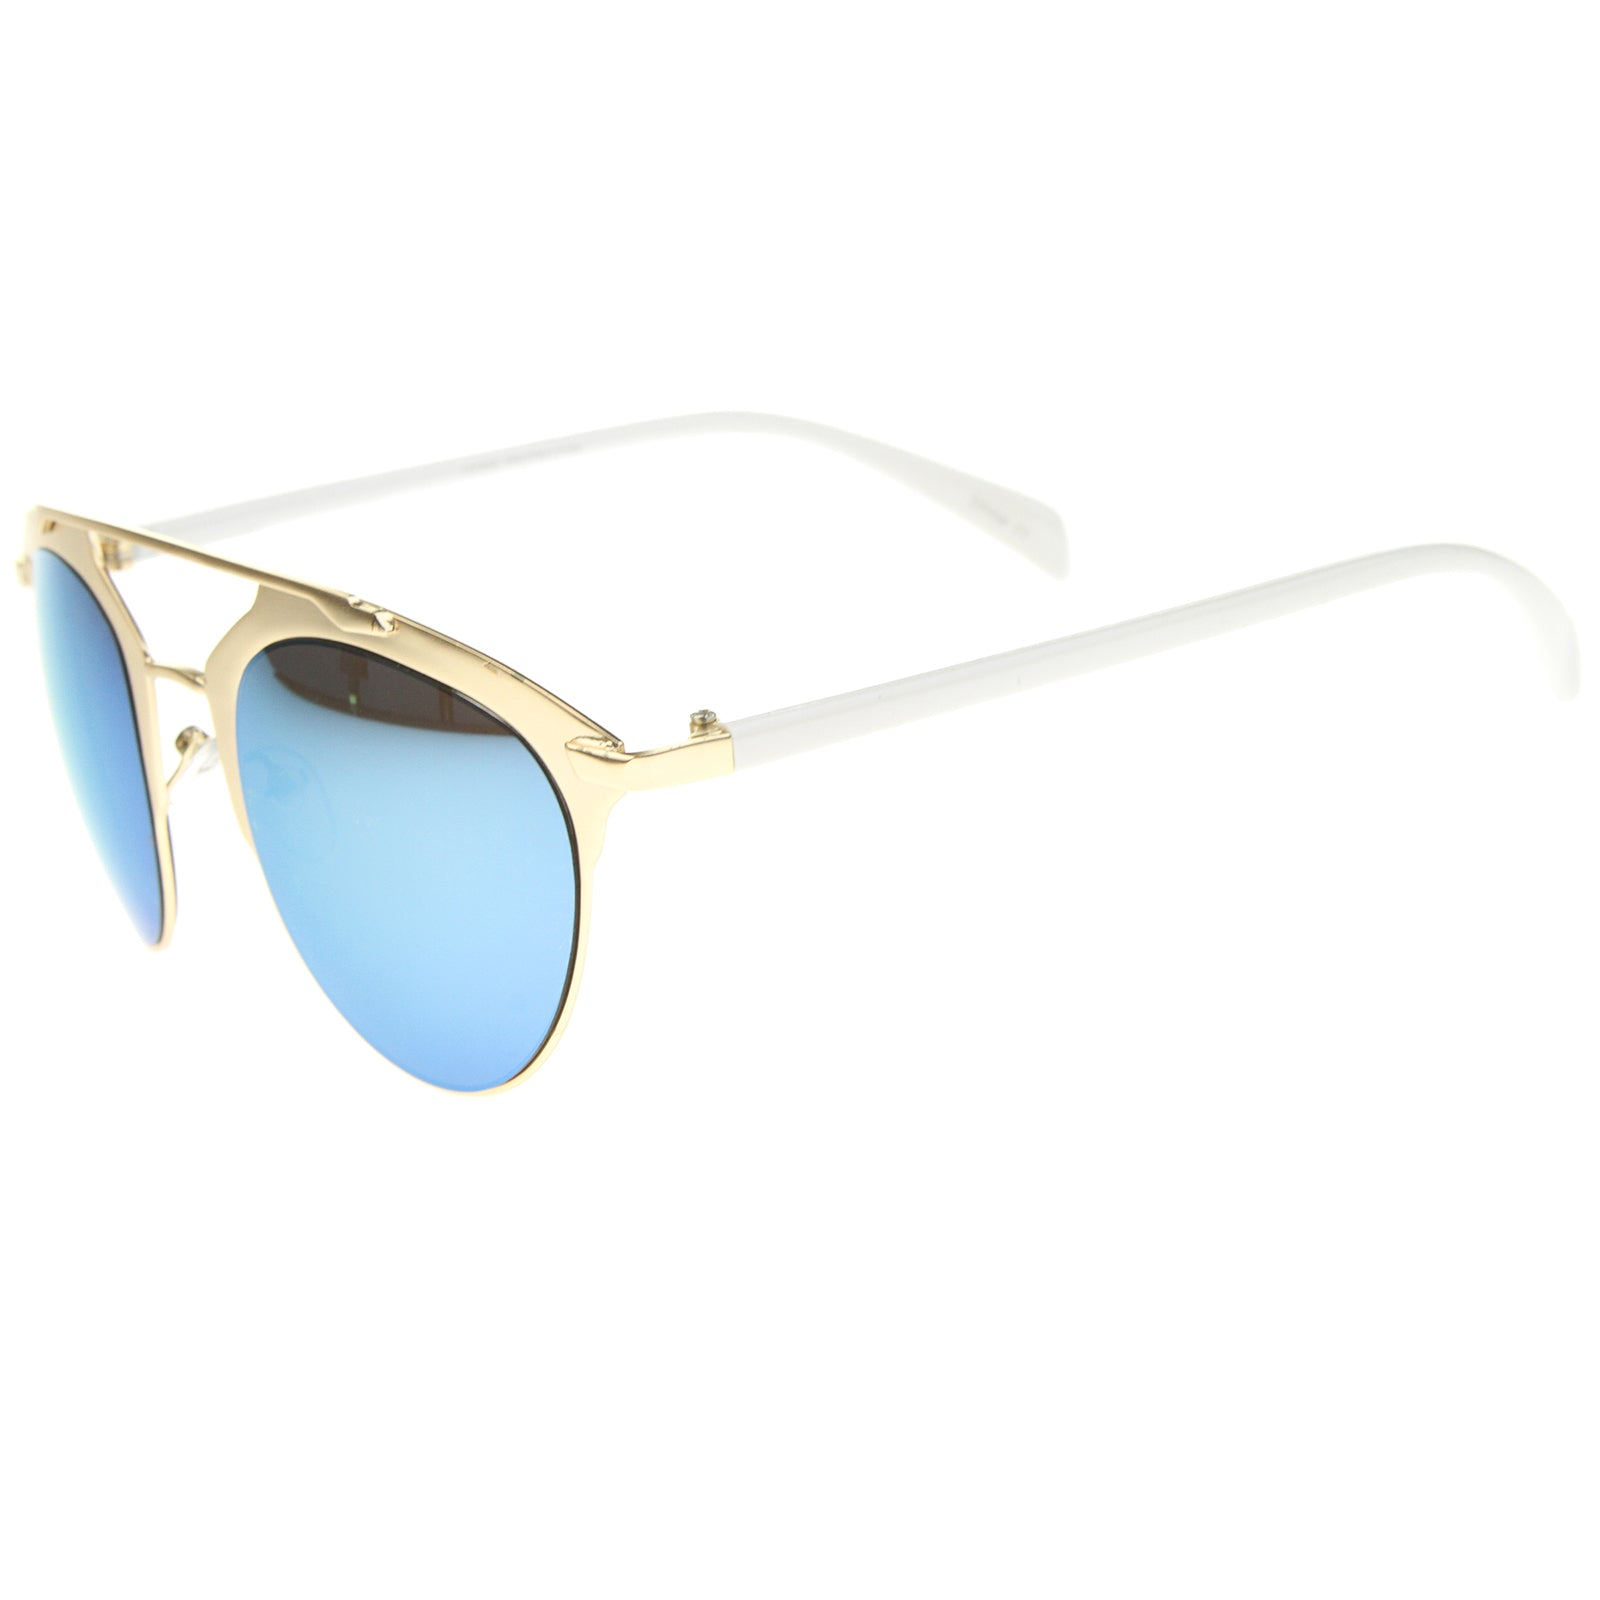 Modern Fashion Metal Double Bridge Mirror Lens Pantos Aviator Sunglasses 50mm - sunglass.la - 3